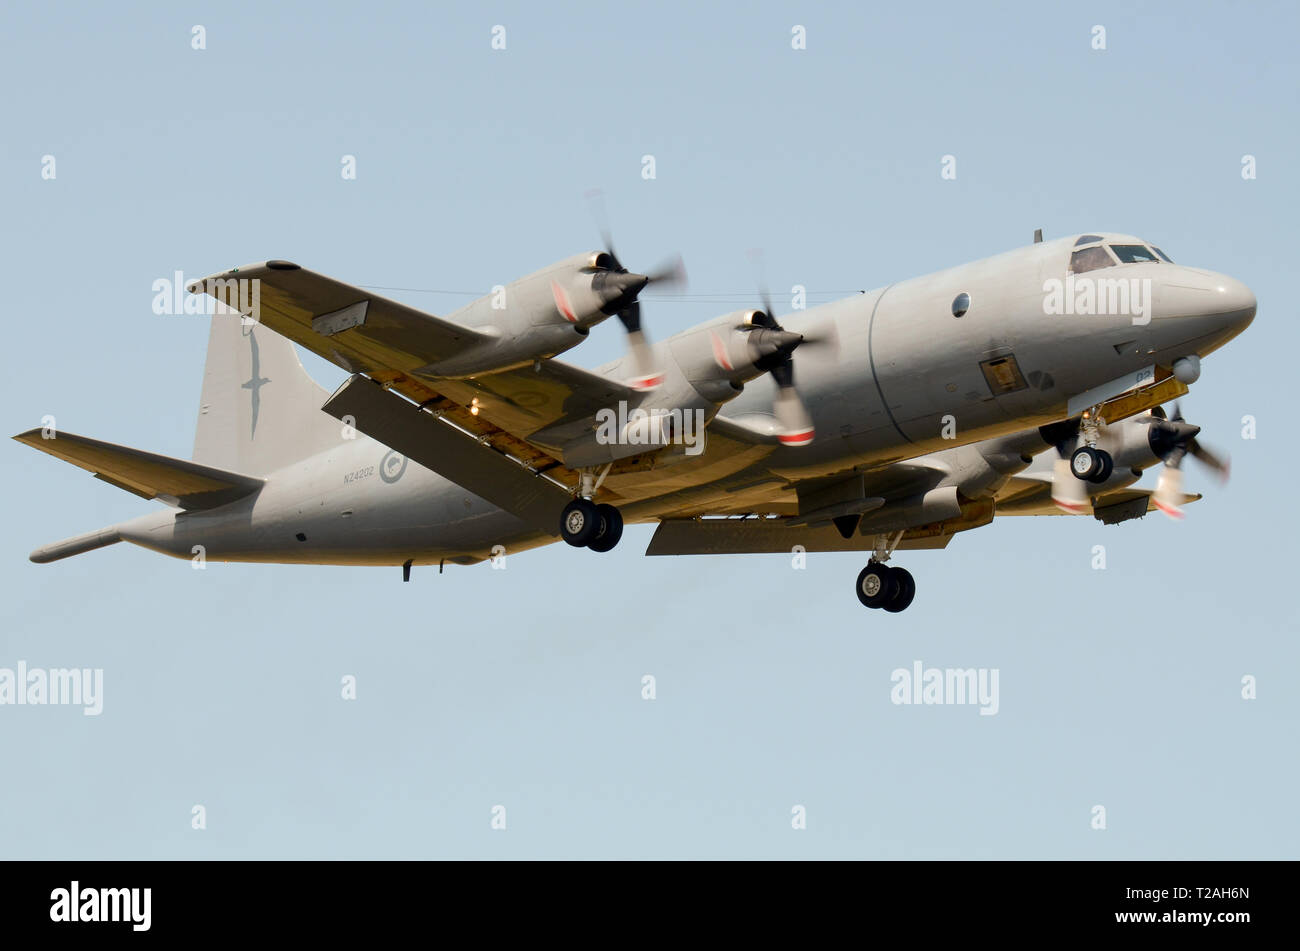 Royal New Zealand Air Force Lockheed P-3 Orion plane, upgraded by L-3 Communications Canada and now designated as P-3K2. Maritime patrol aircraft 5sqn Stock Photo